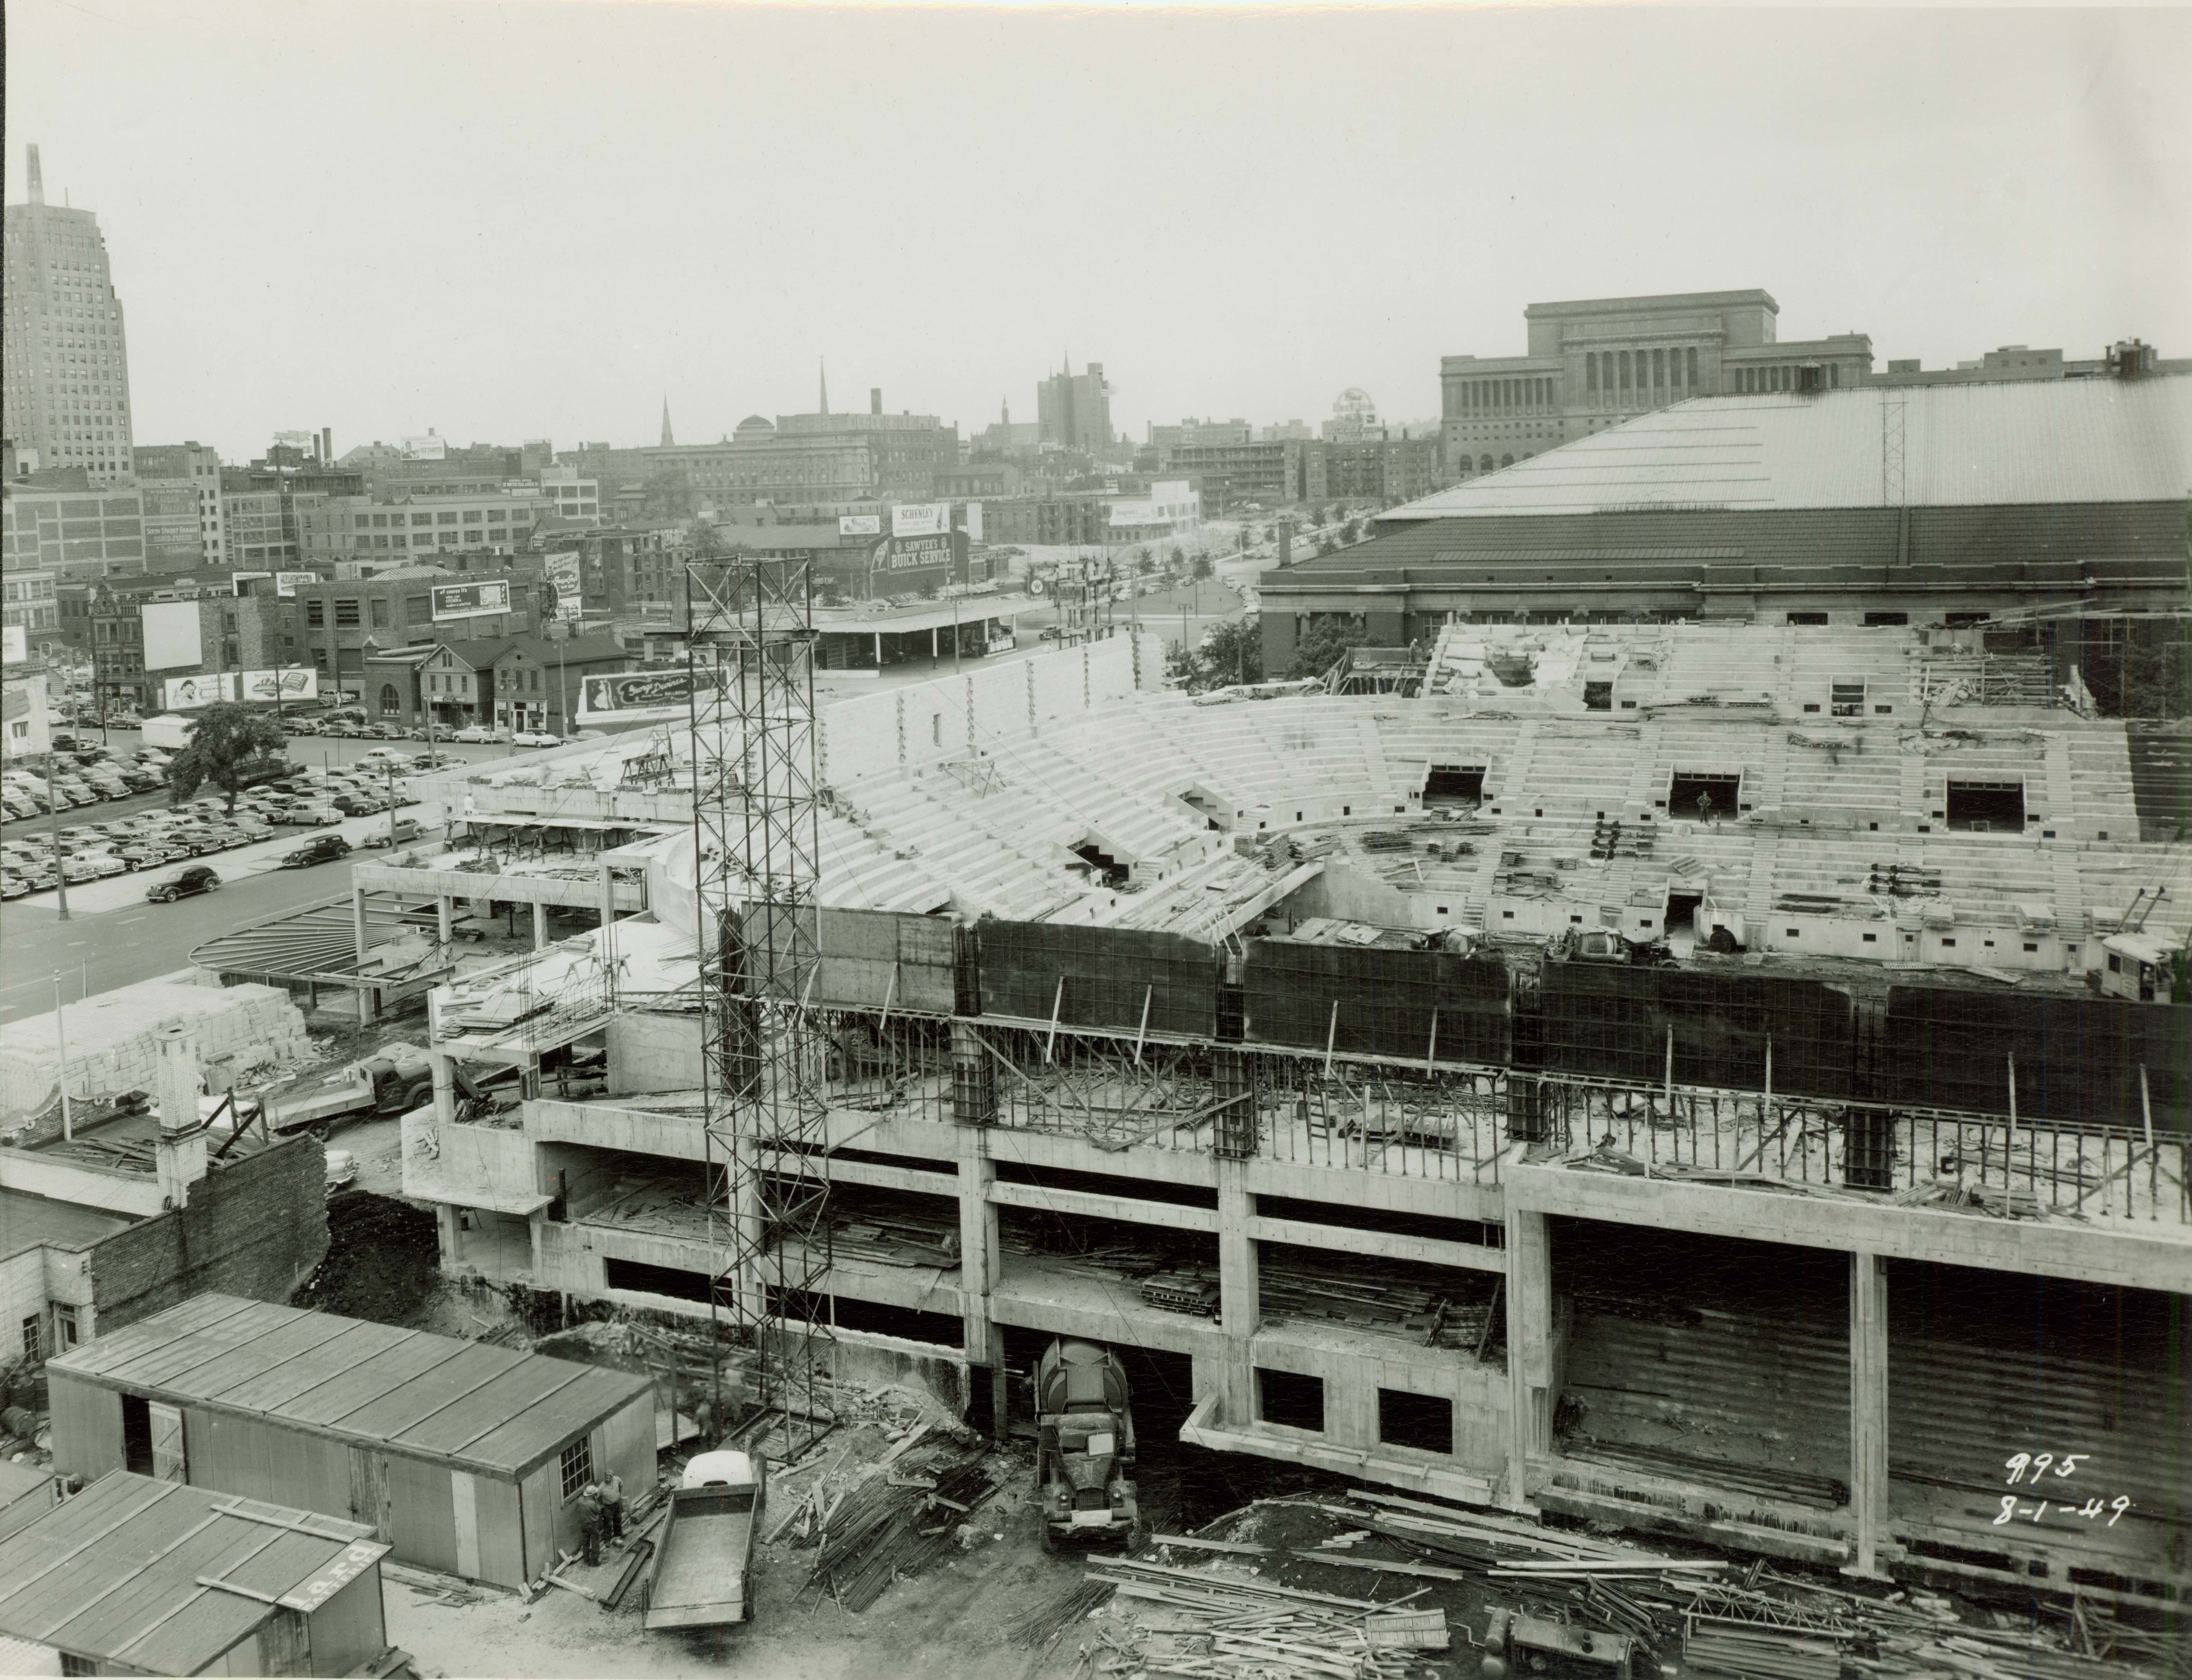 <table class=&quot;lightbox&quot;><tr><td colspan=2 class=&quot;lightbox-title&quot;>Milwaukee Arena Construction</td></tr><tr><td colspan=2 class=&quot;lightbox-caption&quot;>The construction of the Milwaukee Arena, completed in 1950, was one of the first major initiatives for which the Greater Milwaukee Committee advocated. It is now known as the UWM Panther Arena.</td></tr><tr><td colspan=2 class=&quot;lightbox-spacer&quot;></td></tr><tr class=&quot;lightbox-detail&quot;><td class=&quot;cell-title&quot;>Source: </td><td class=&quot;cell-value&quot;>From the Historic Photo Collection of the Milwaukee Public Library. Reprinted with permission.<br /><a href=&quot;http://content.mpl.org/cdm/singleitem/collection/HstoricPho/id/7831/rec/10&quot; target=&quot;_blank&quot;>Milwaukee Public Library</a></td></tr><tr class=&quot;filler-row&quot;><td colspan=2>&nbsp;</td></tr></table>